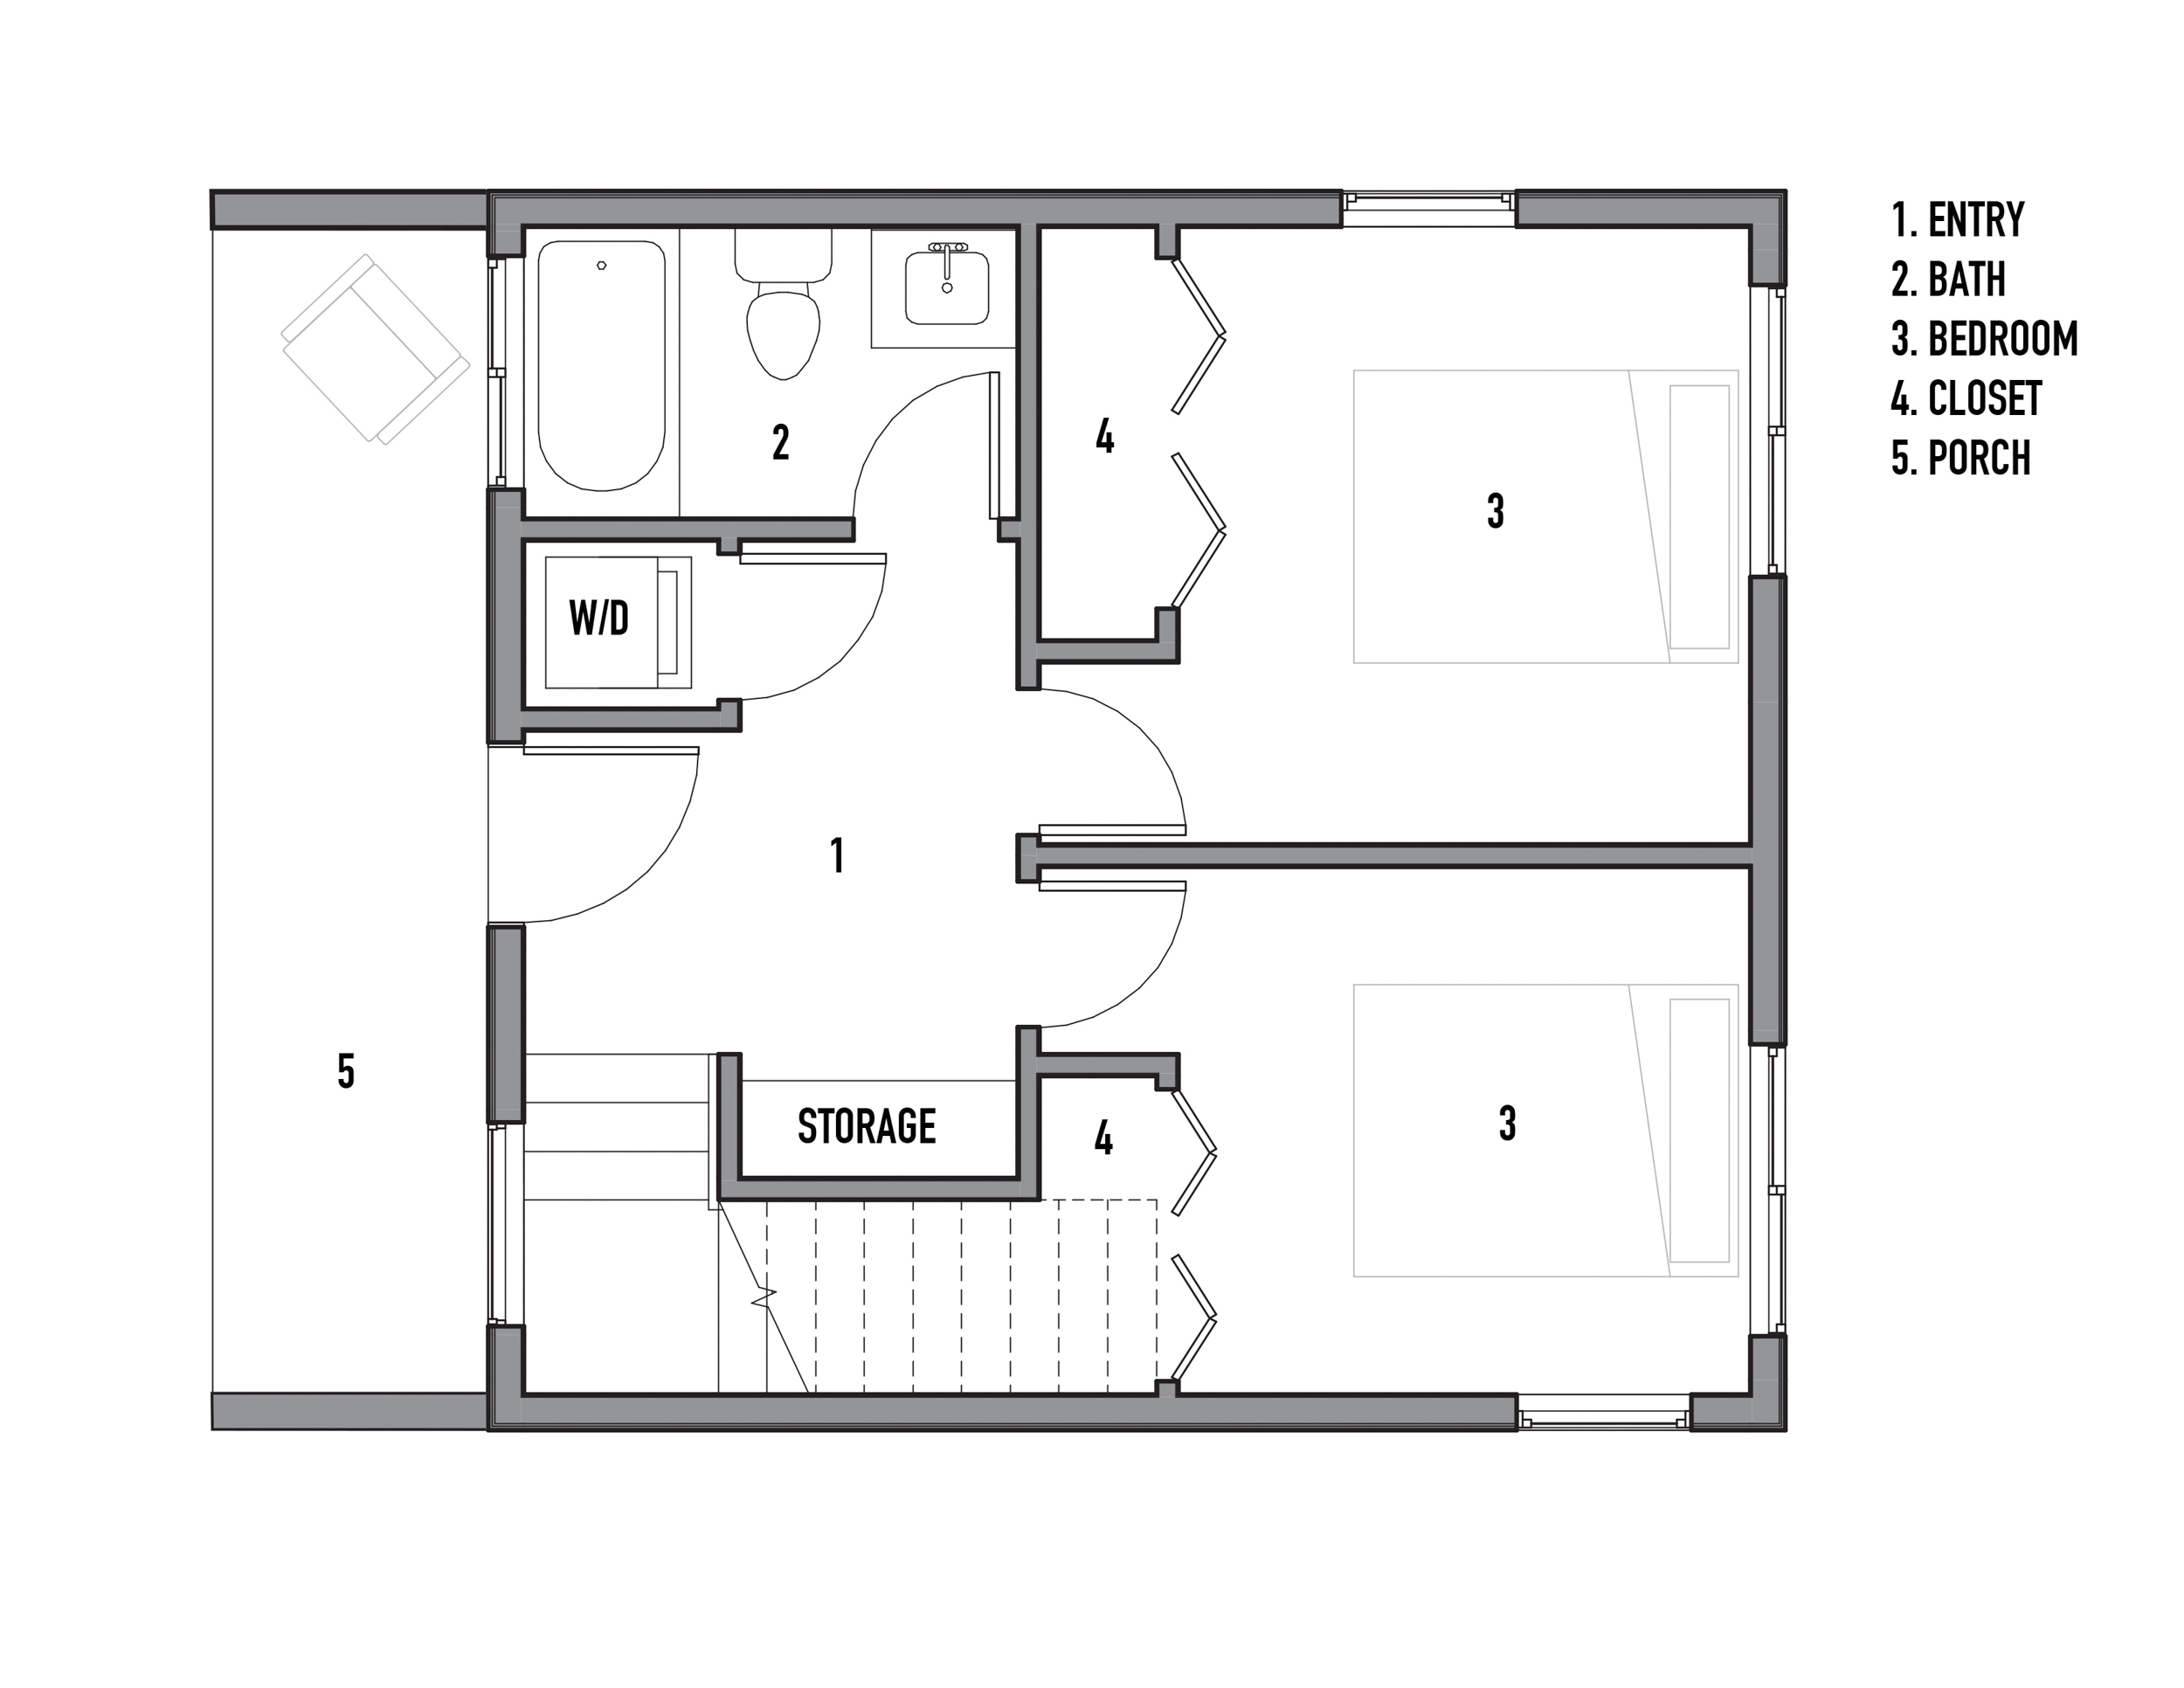 The reverse floor plan puts two bedrooms on the ground floor